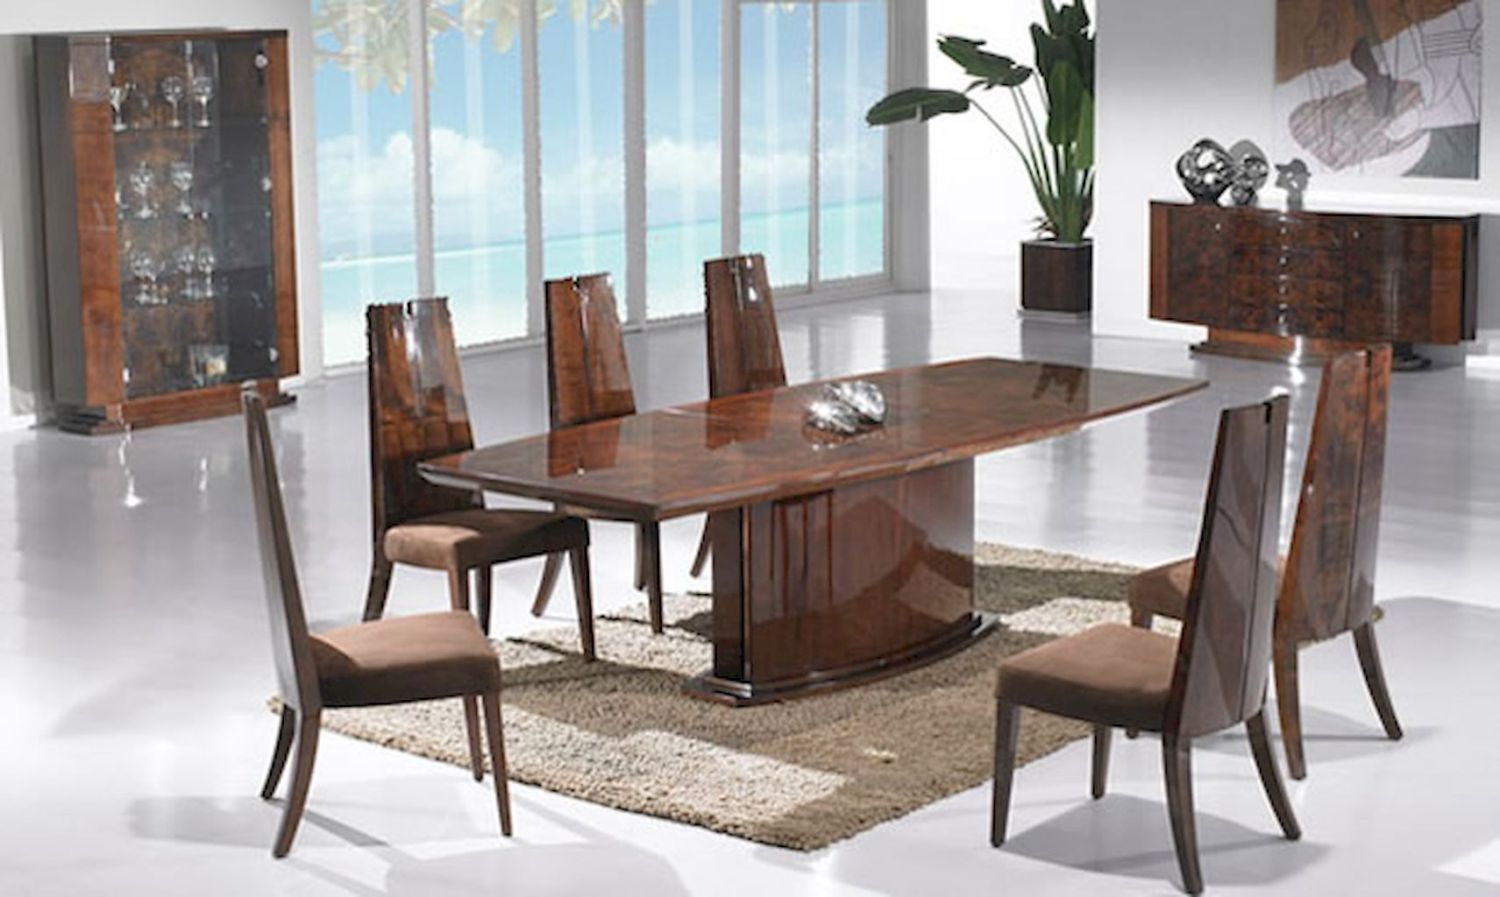 Amazing Dining Table Design Of Modern And Stylish Dining Table